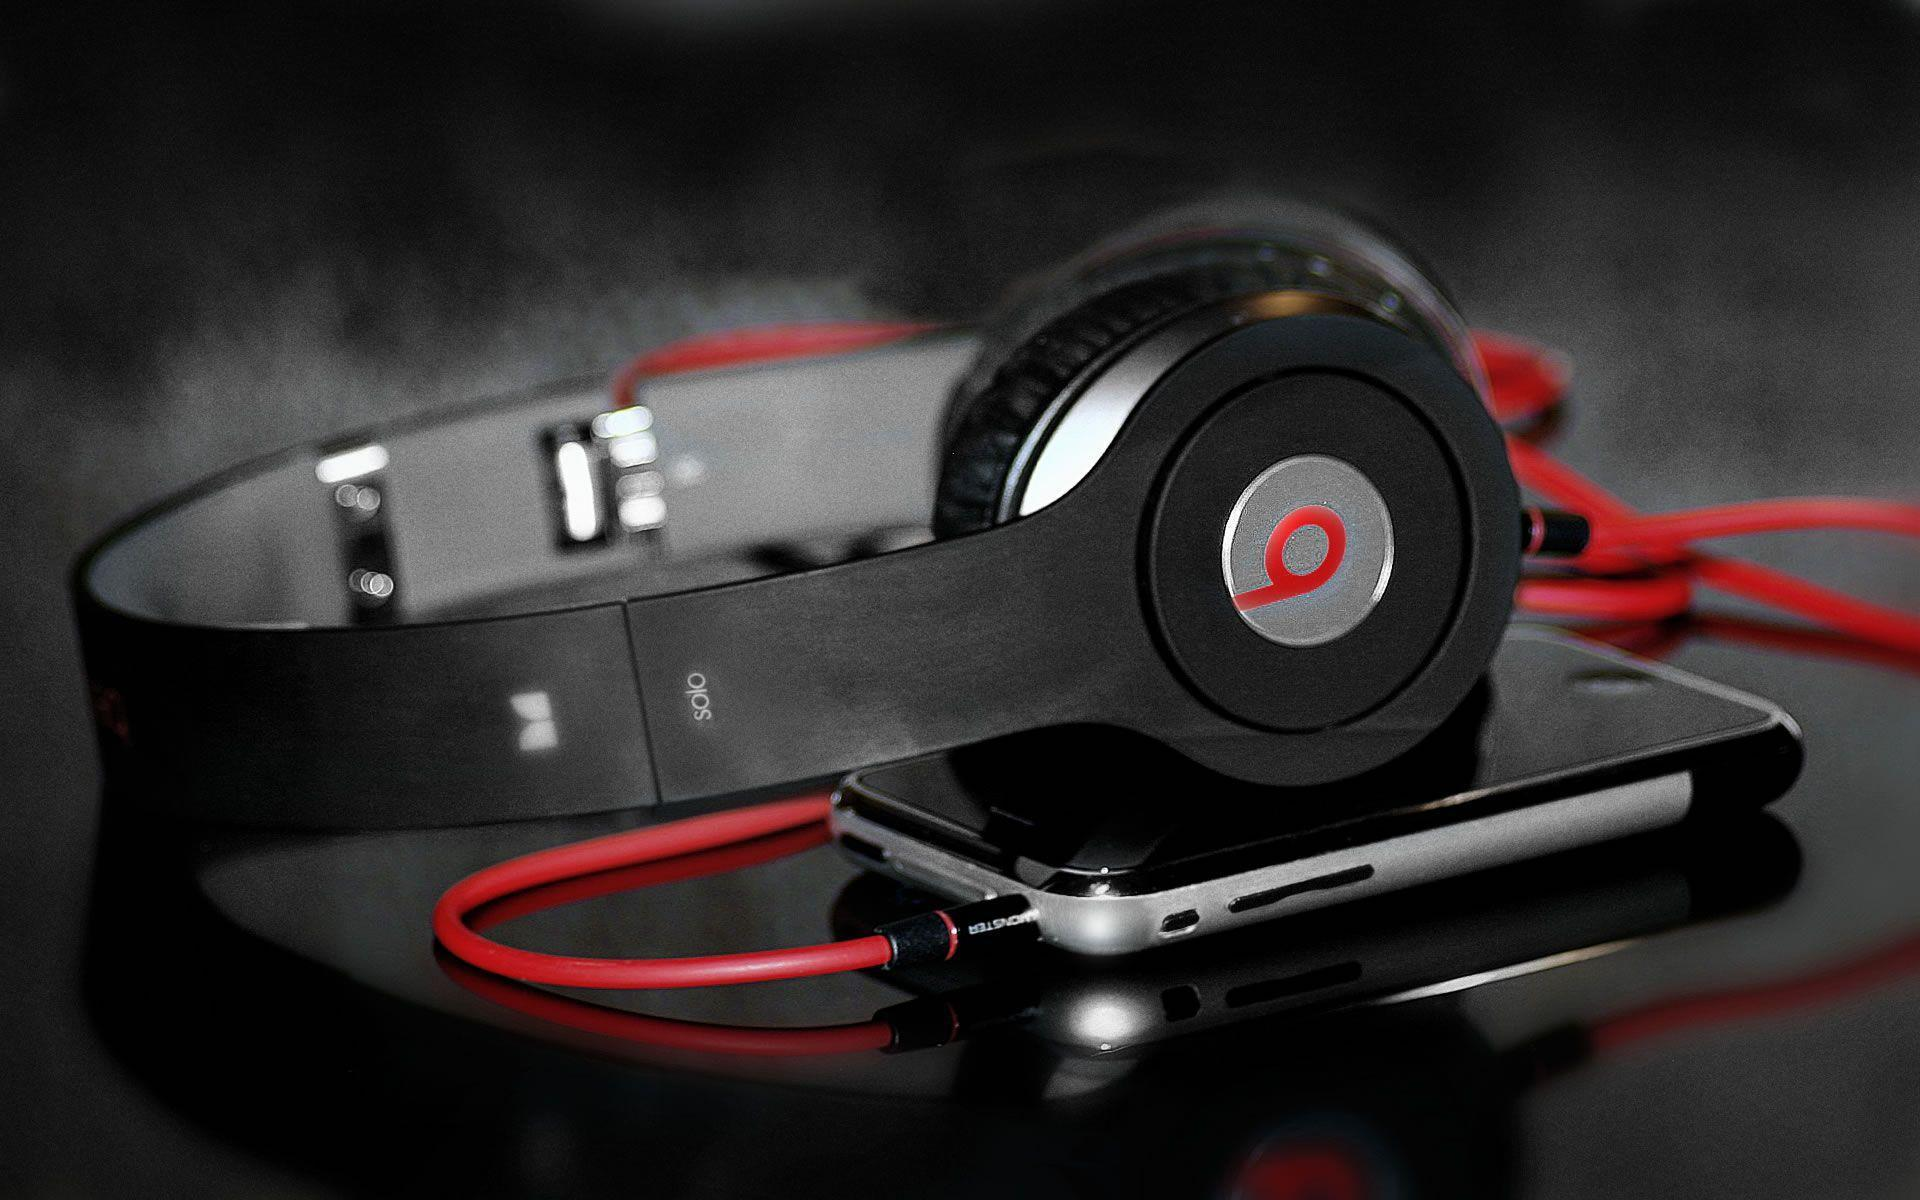 Beats by dre wallpapers wallpaper cave beats by dre wallpapers full hd wallpaper search page 2 voltagebd Gallery